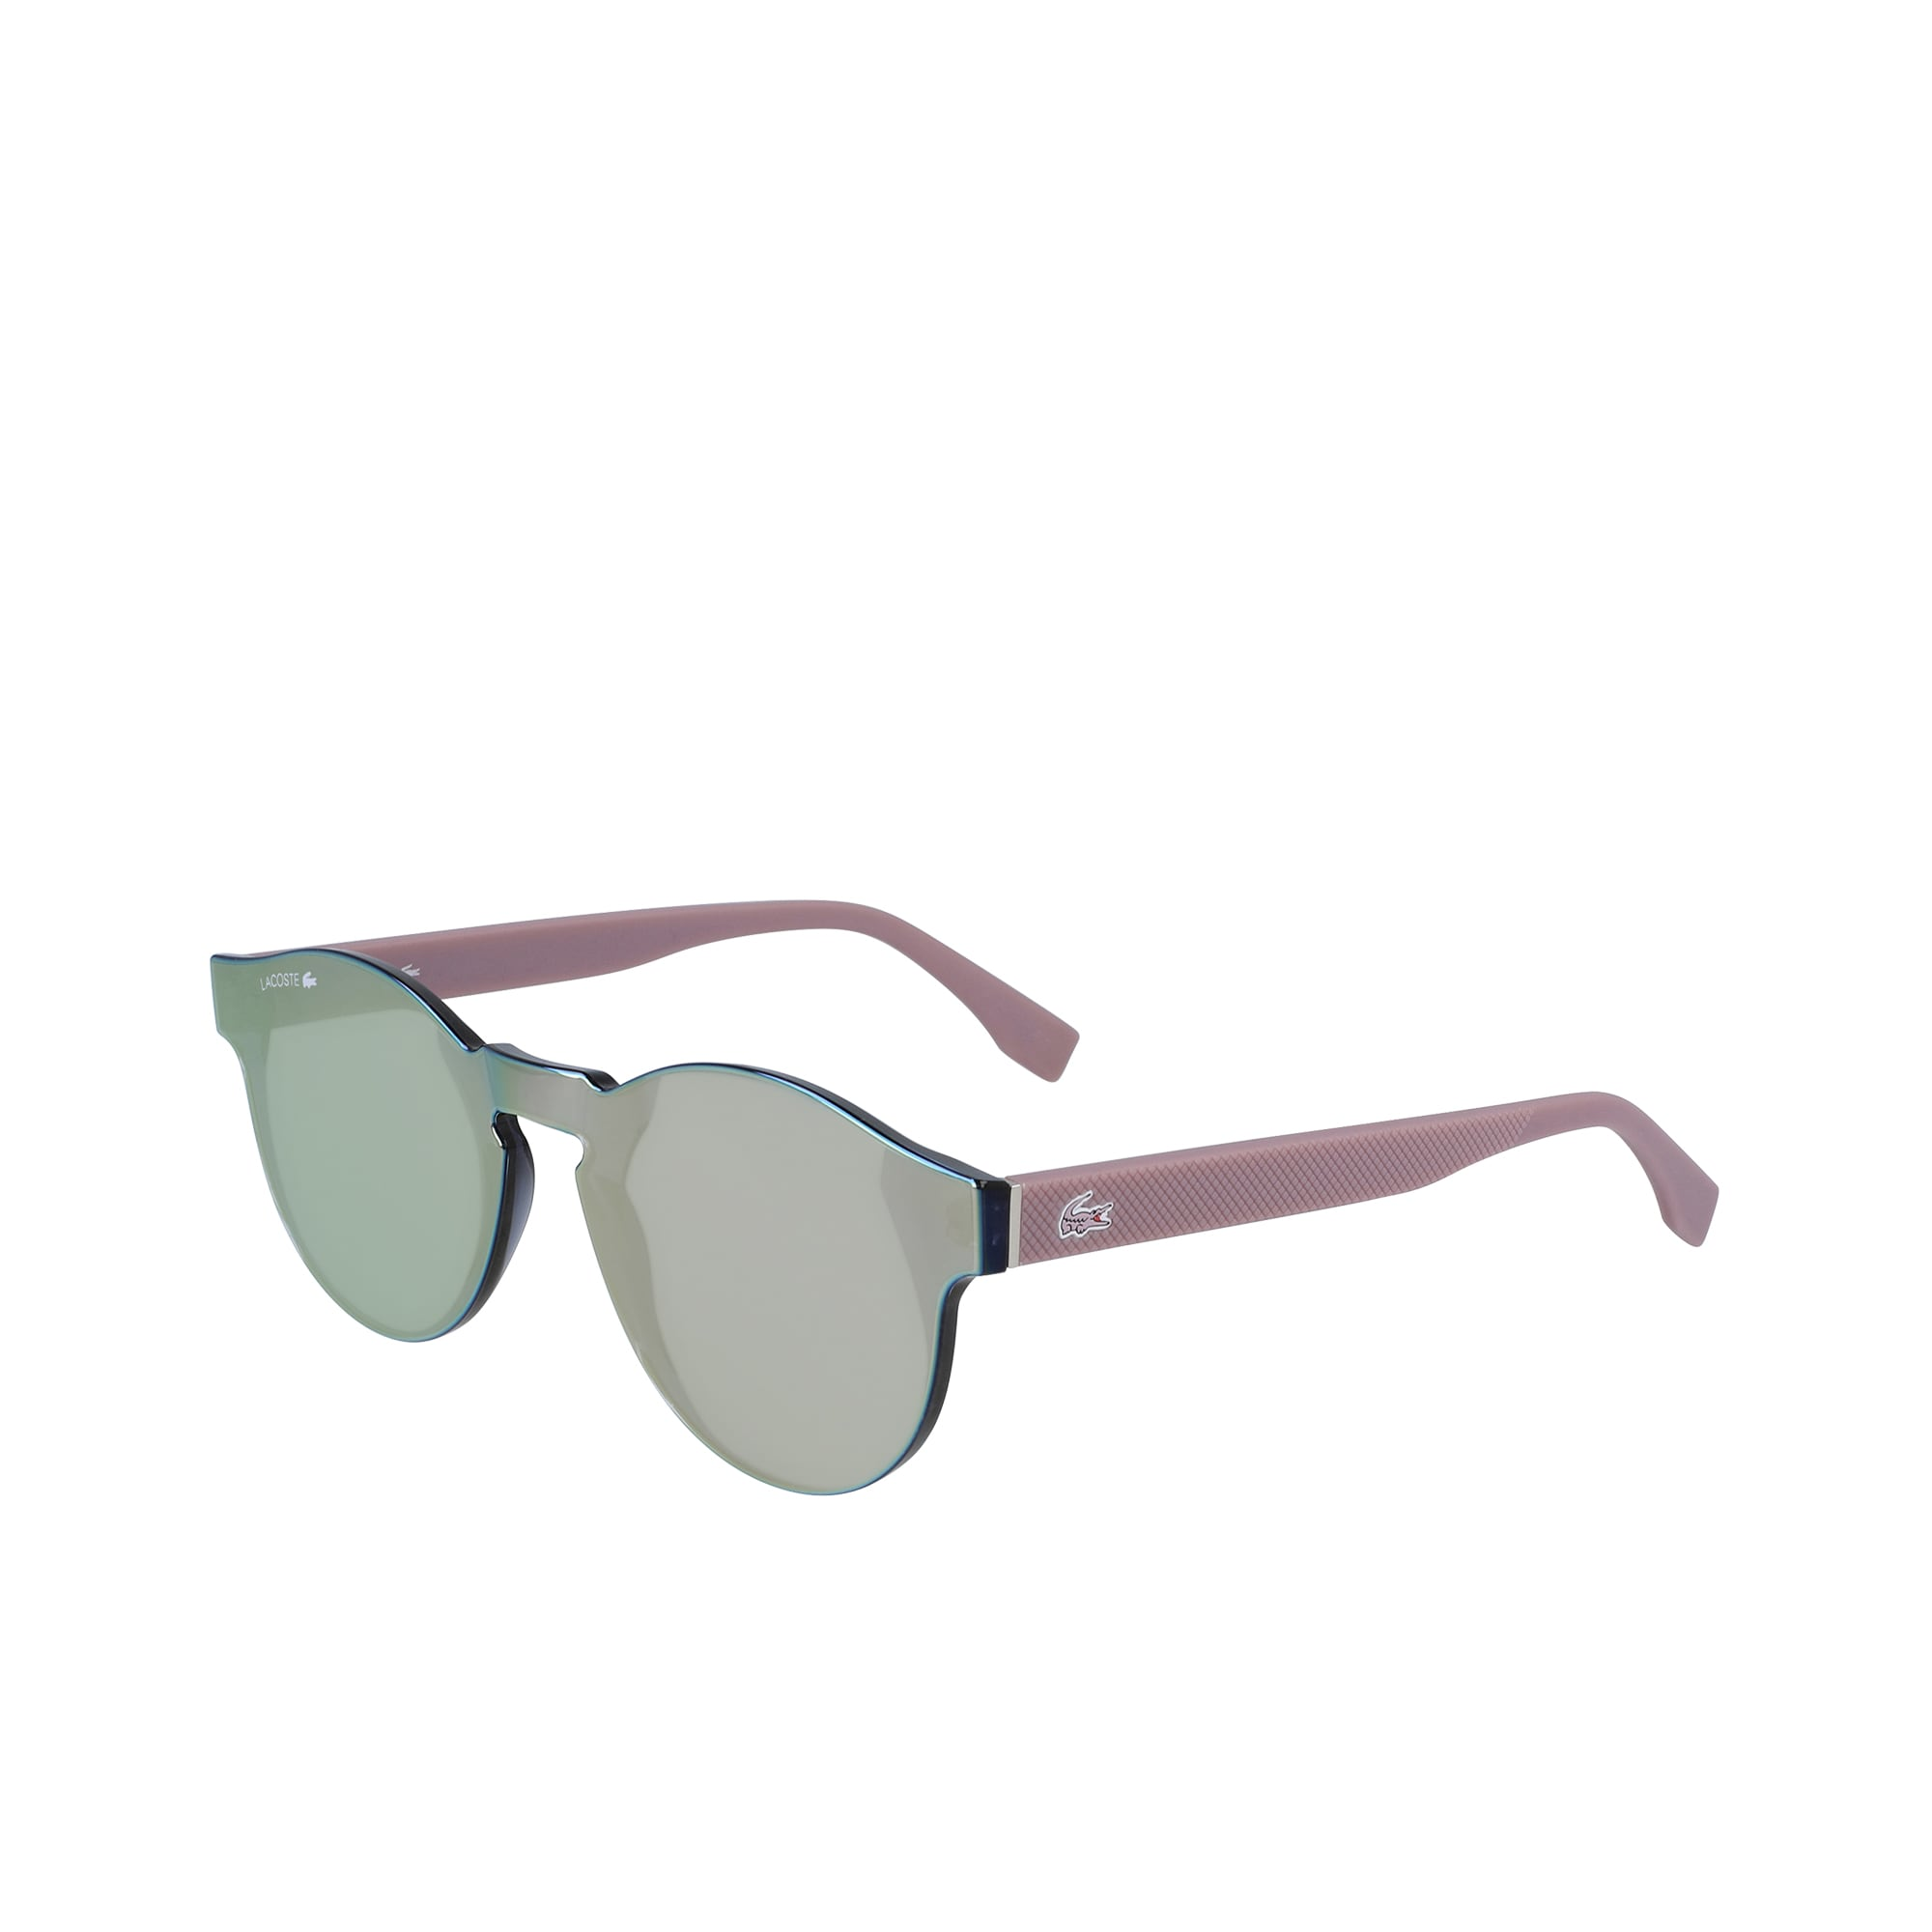 1317071a62b6 Sunglasses for men